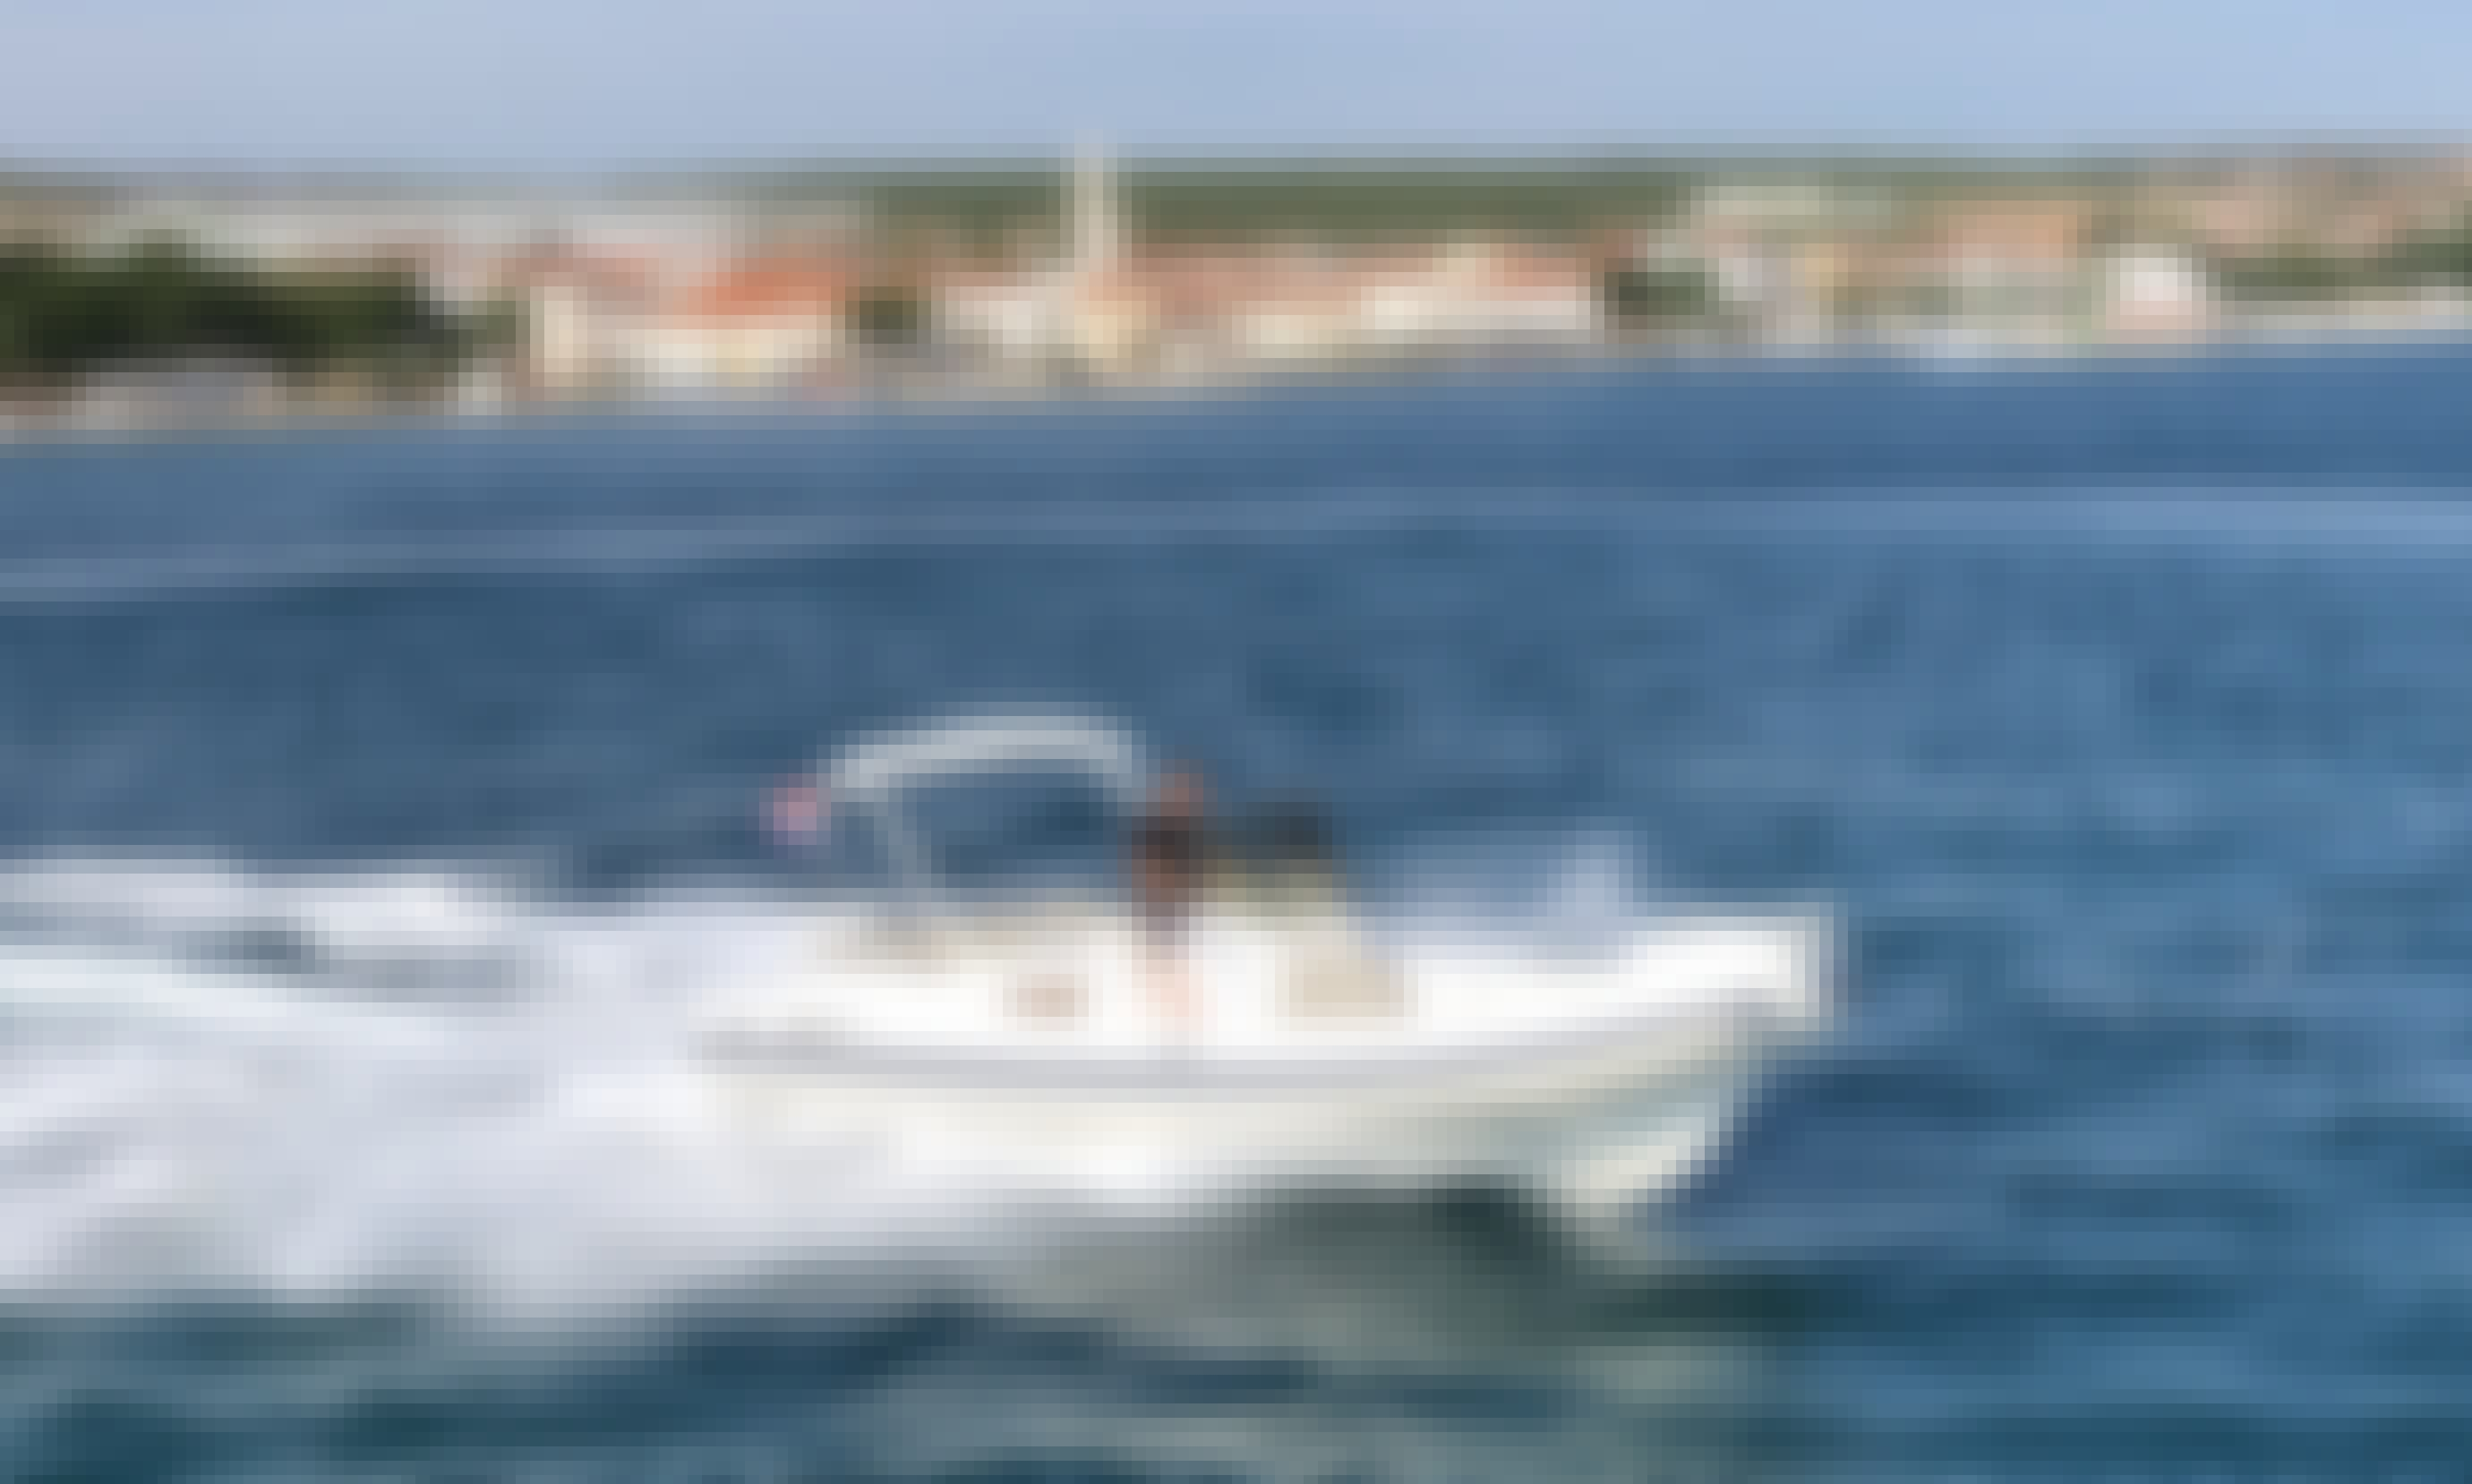 Nuova Jolly Blackfin 25 RIB with Evinrude 250 Outboard Motor in Biograd na Moru